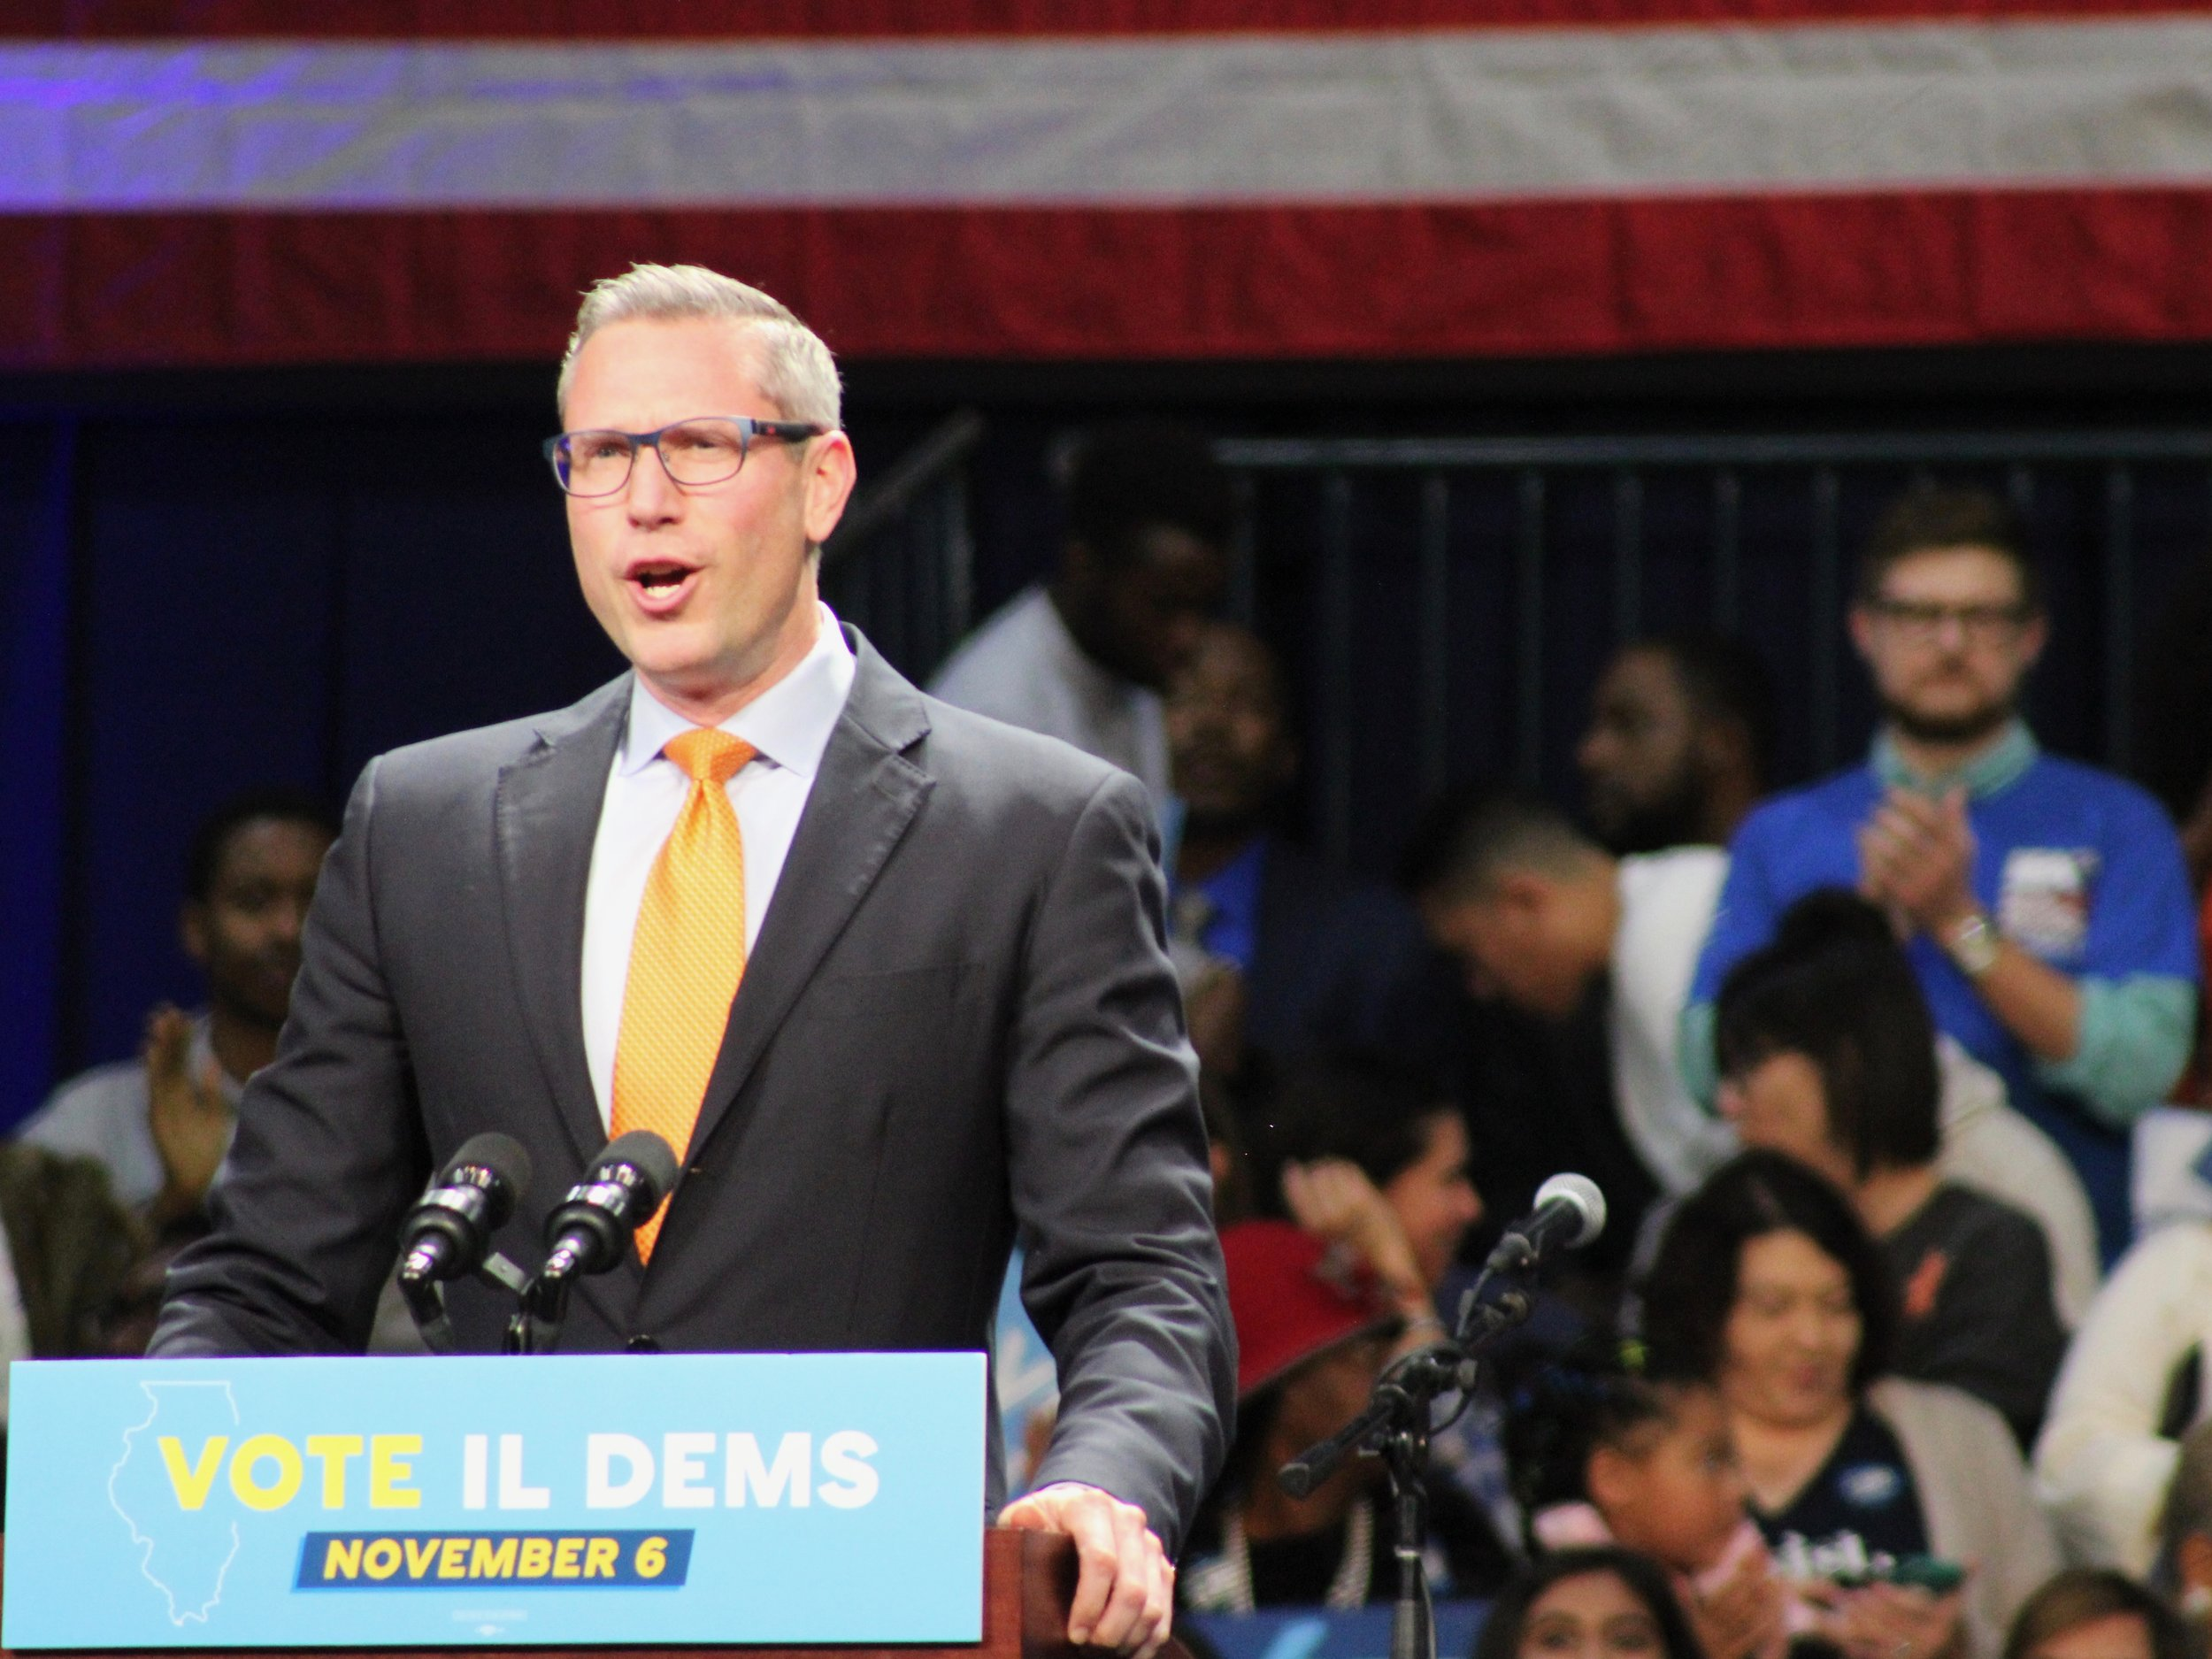 """The president shut down the federal government and threatened the livelihood of thousands of families in Illinois to play political games."" - Treasurer Michael Frerichs (One Illinois/Ted Cox)"